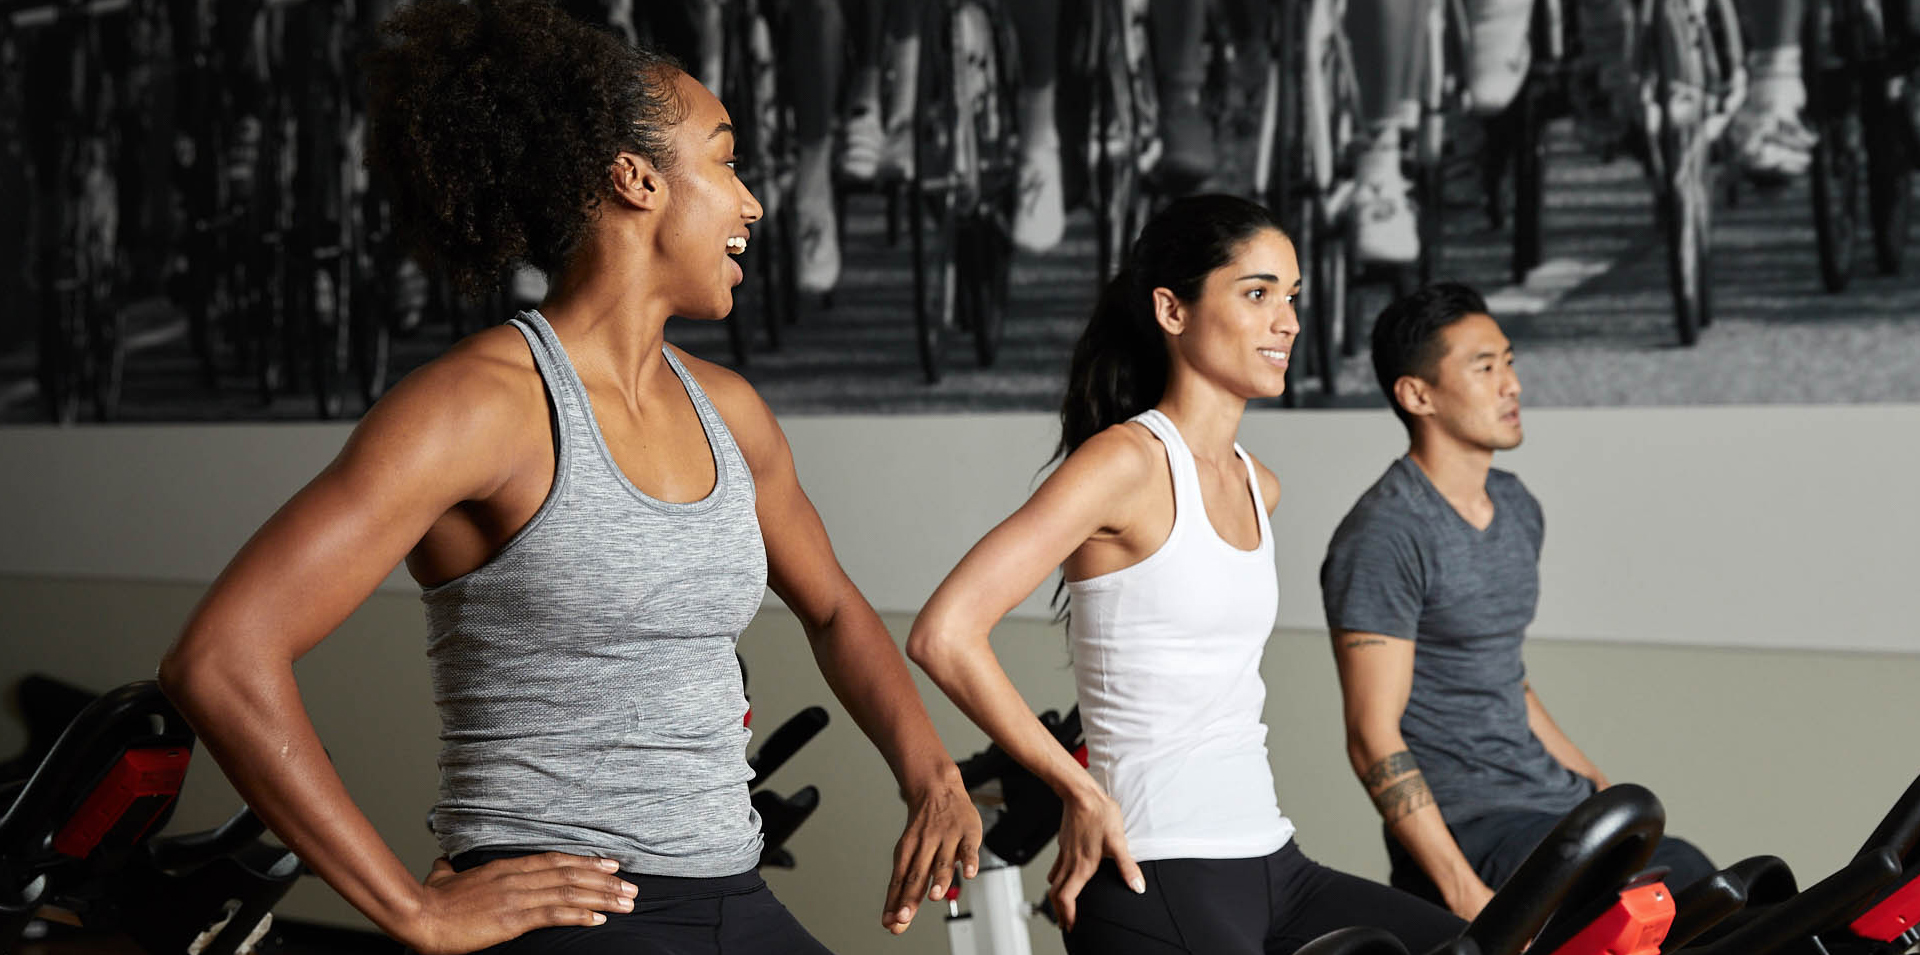 Three members in a cycling group fitness class